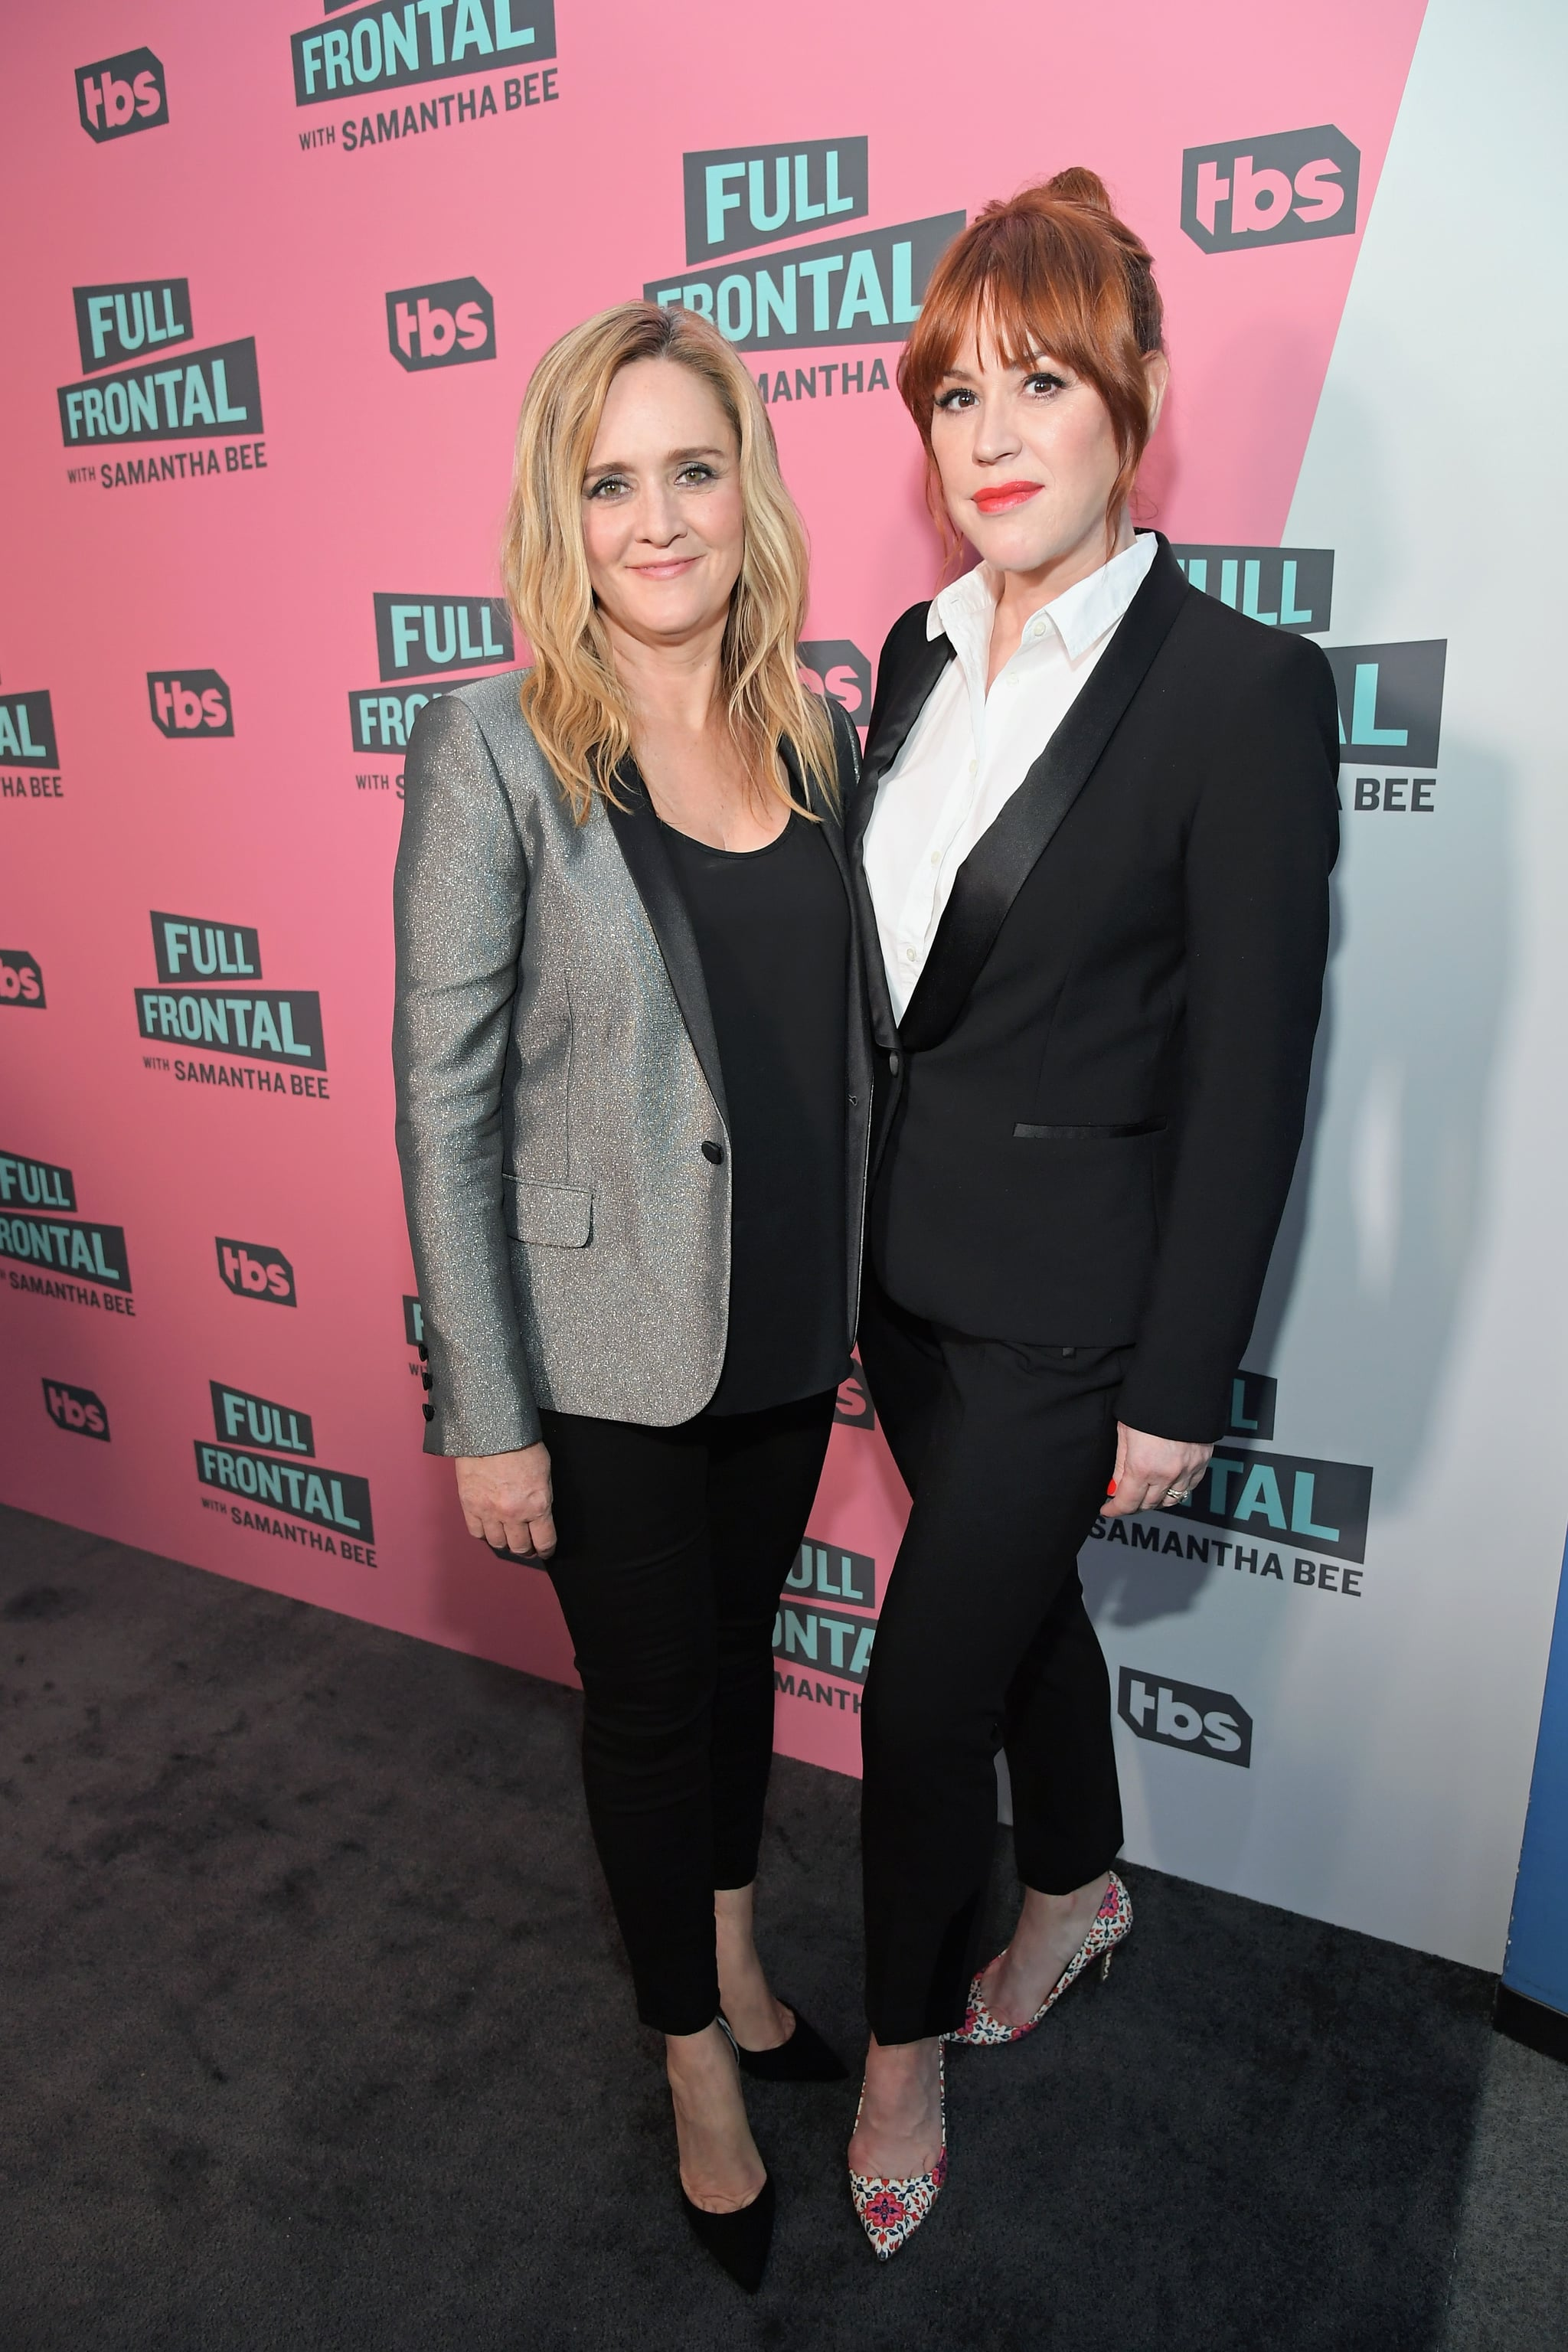 BEVERLY HILLS, CA - MAY 24:  Executive Producer Samantha Bee (L) and actor Molly Ringwald attend 'Full Frontal with Samantha Bee' FYC Event Los Angeles at The WGA Theater on May 24, 2018 in Beverly Hills, California.  (Photo by Charley Gallay/Getty Images for TBS/Turner)